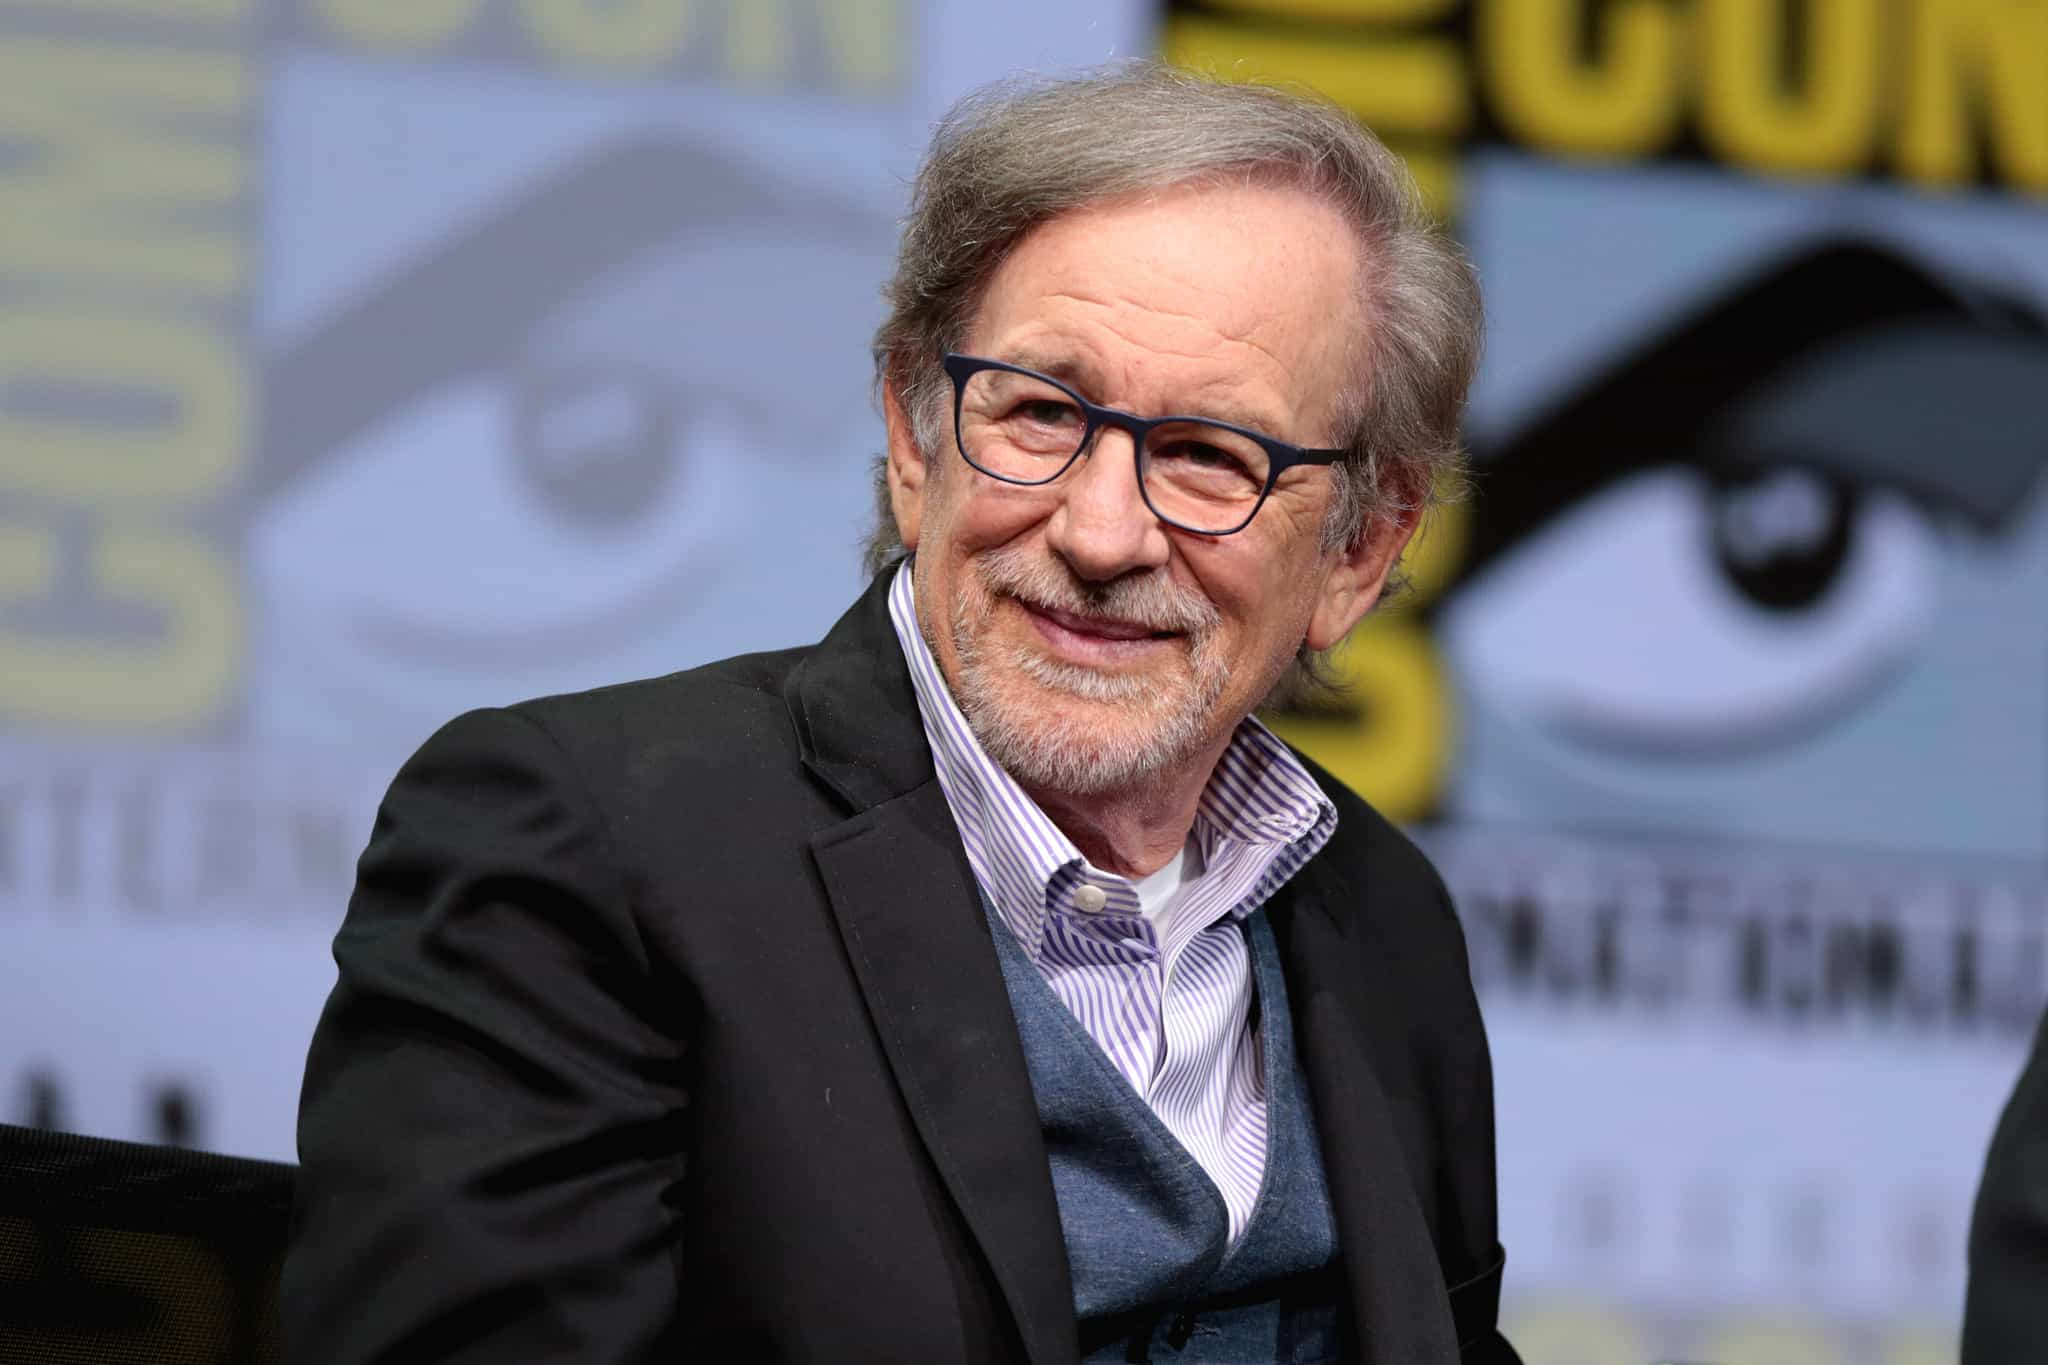 Apple already attracts top talent like Steven Spielberg, show onstage at Comic-Con International in 2017.